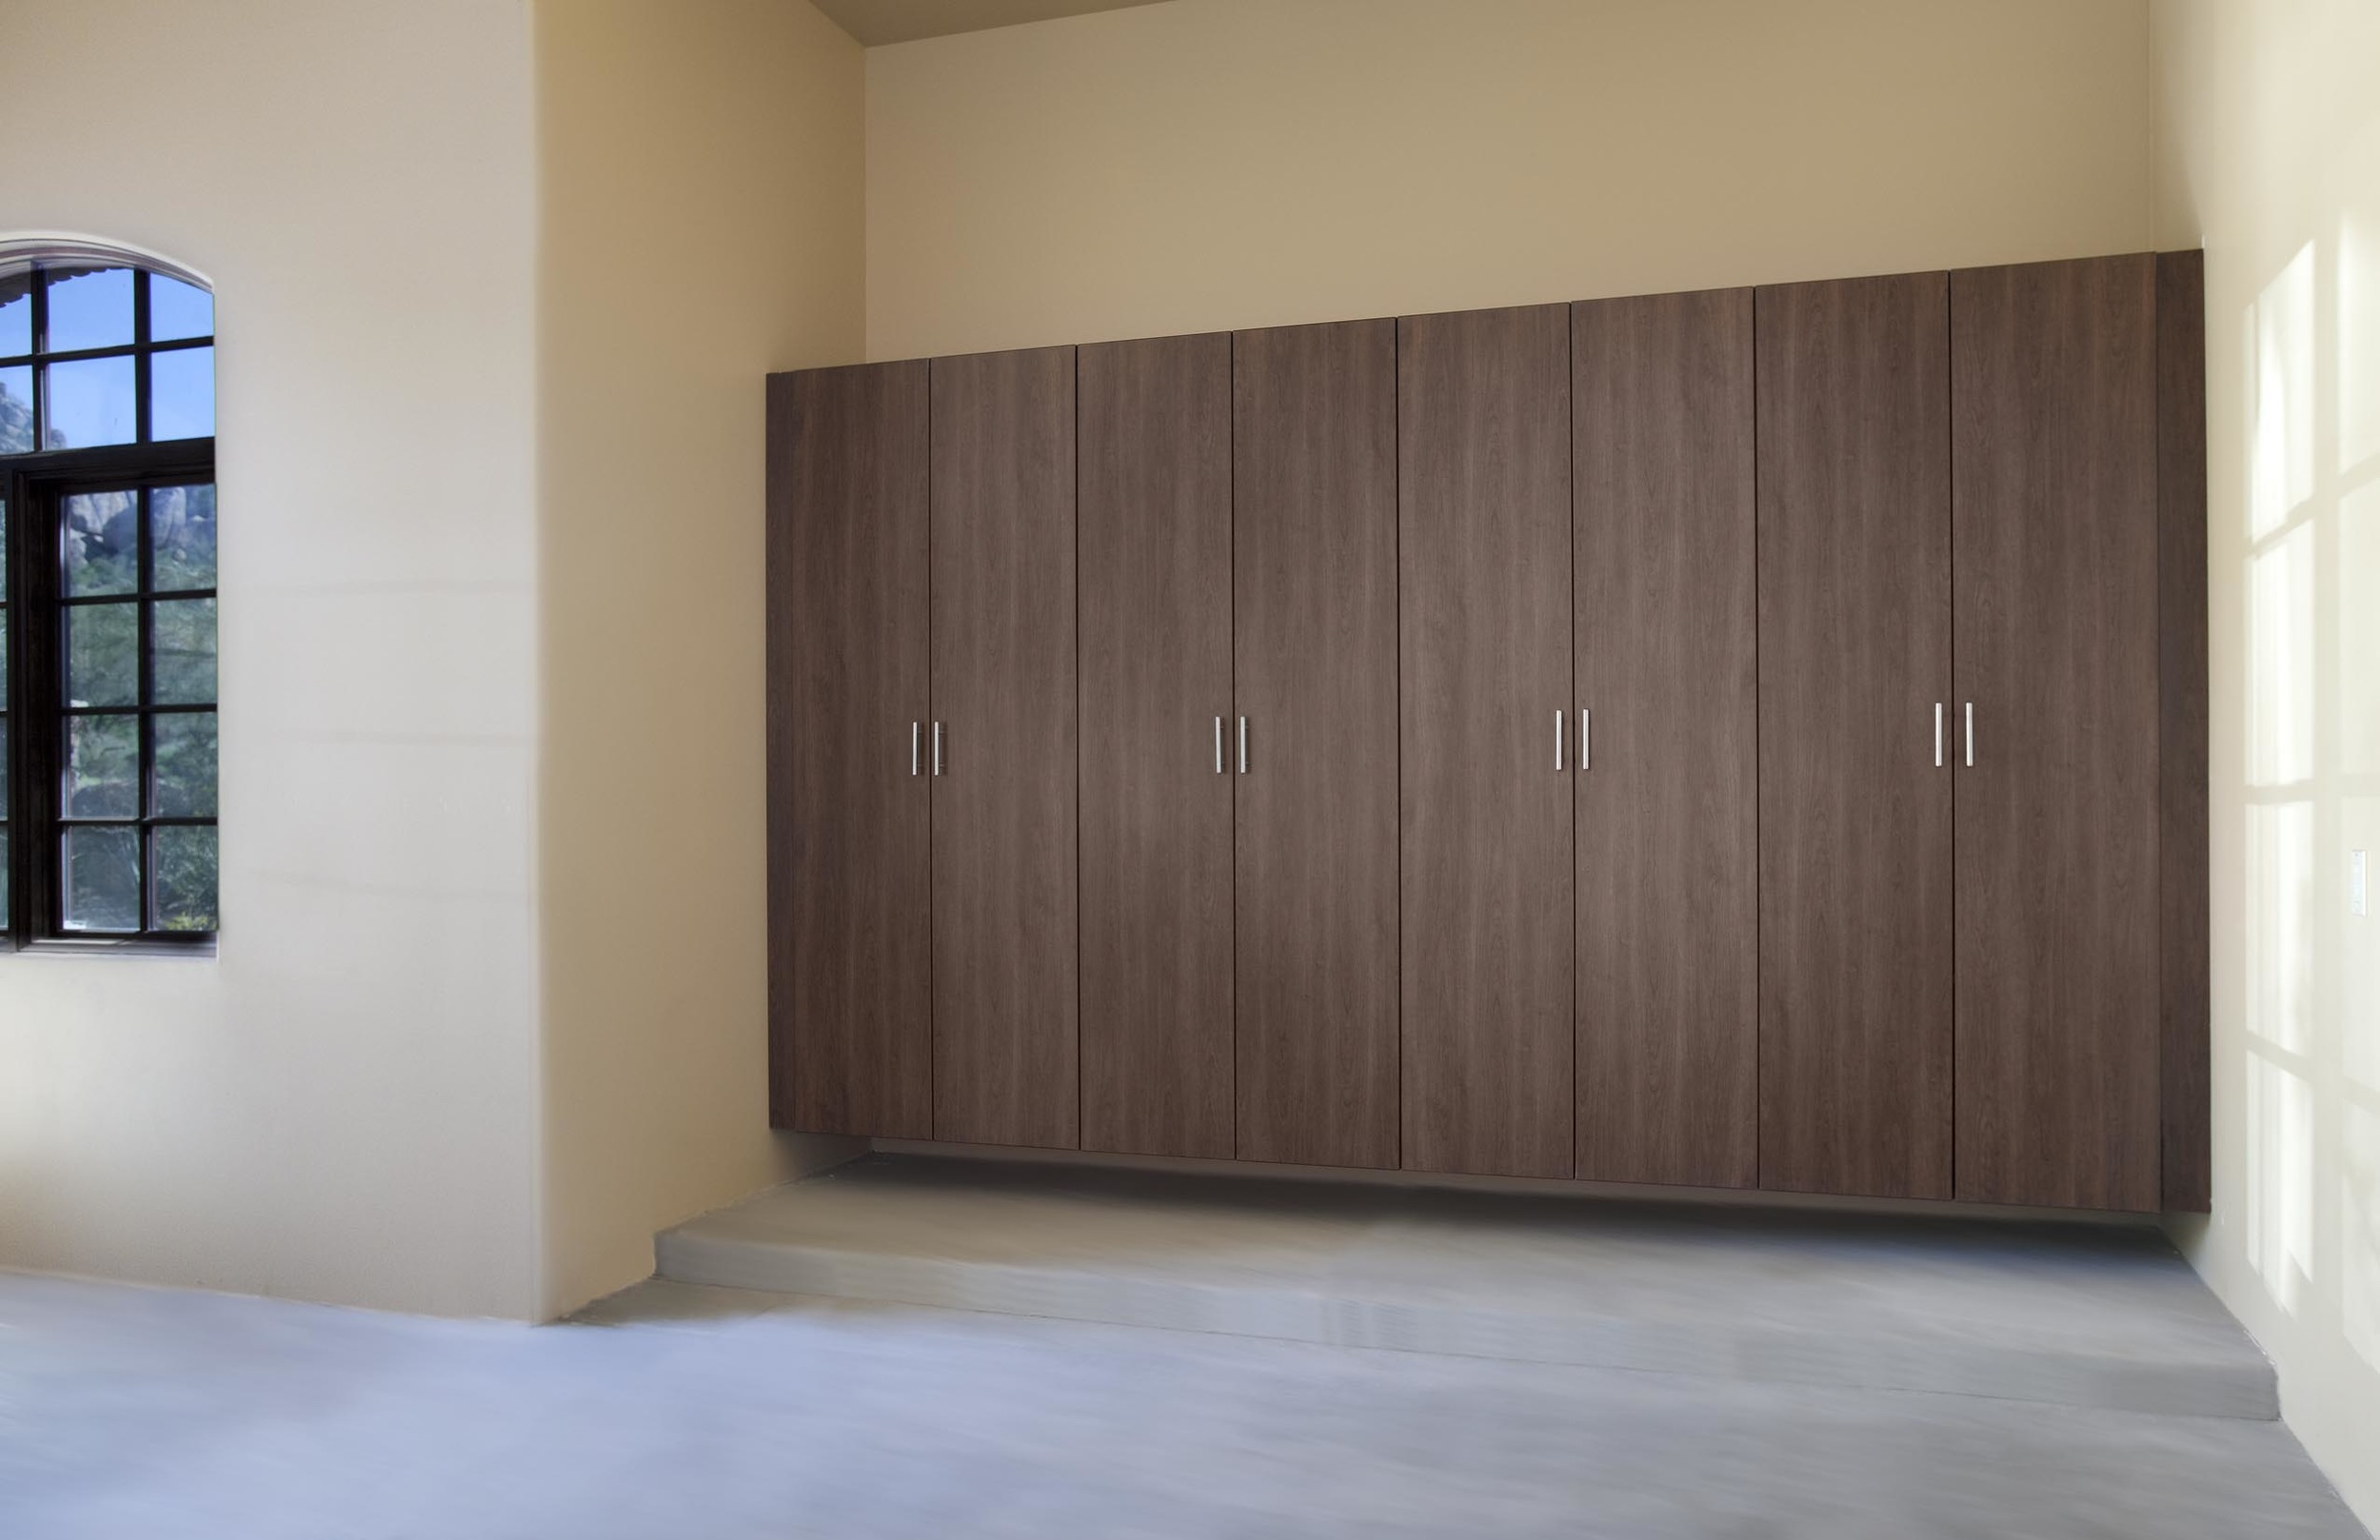 Garage Cabinets And Garage Organization Systems South Coast Organizers Lifetime Warranty Custom Closets Garage Cabinets Home Offices Laundry Rooms Entry Ways More